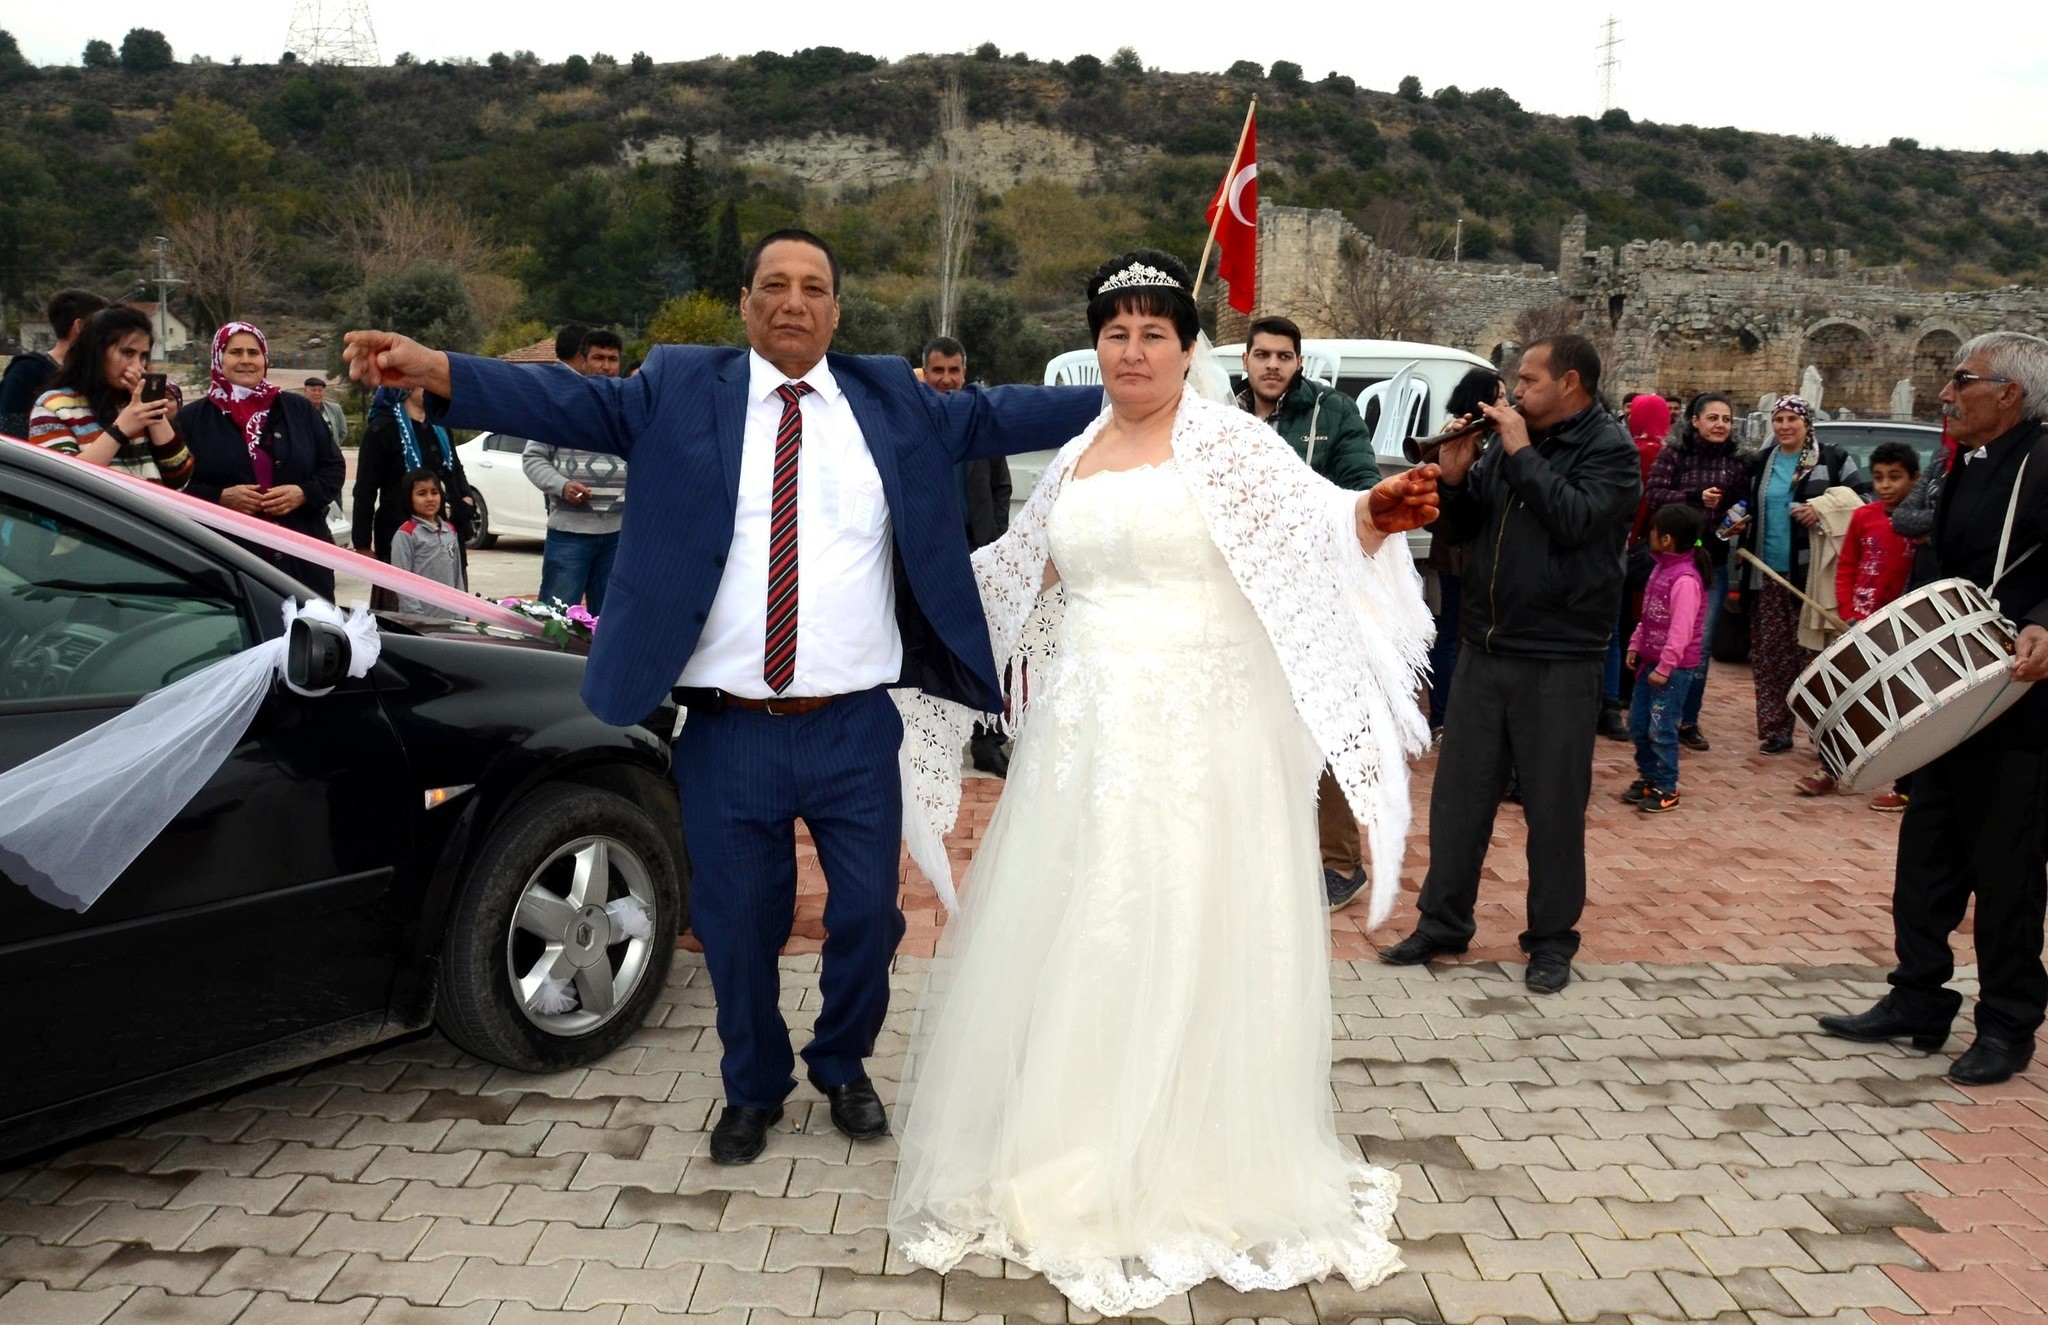 Ahmet (L) and Fadime (R) u00c7oban are dancing during their wedding ceremony in Antalya, Turkey on February 12, 2017. (DHA Photo)